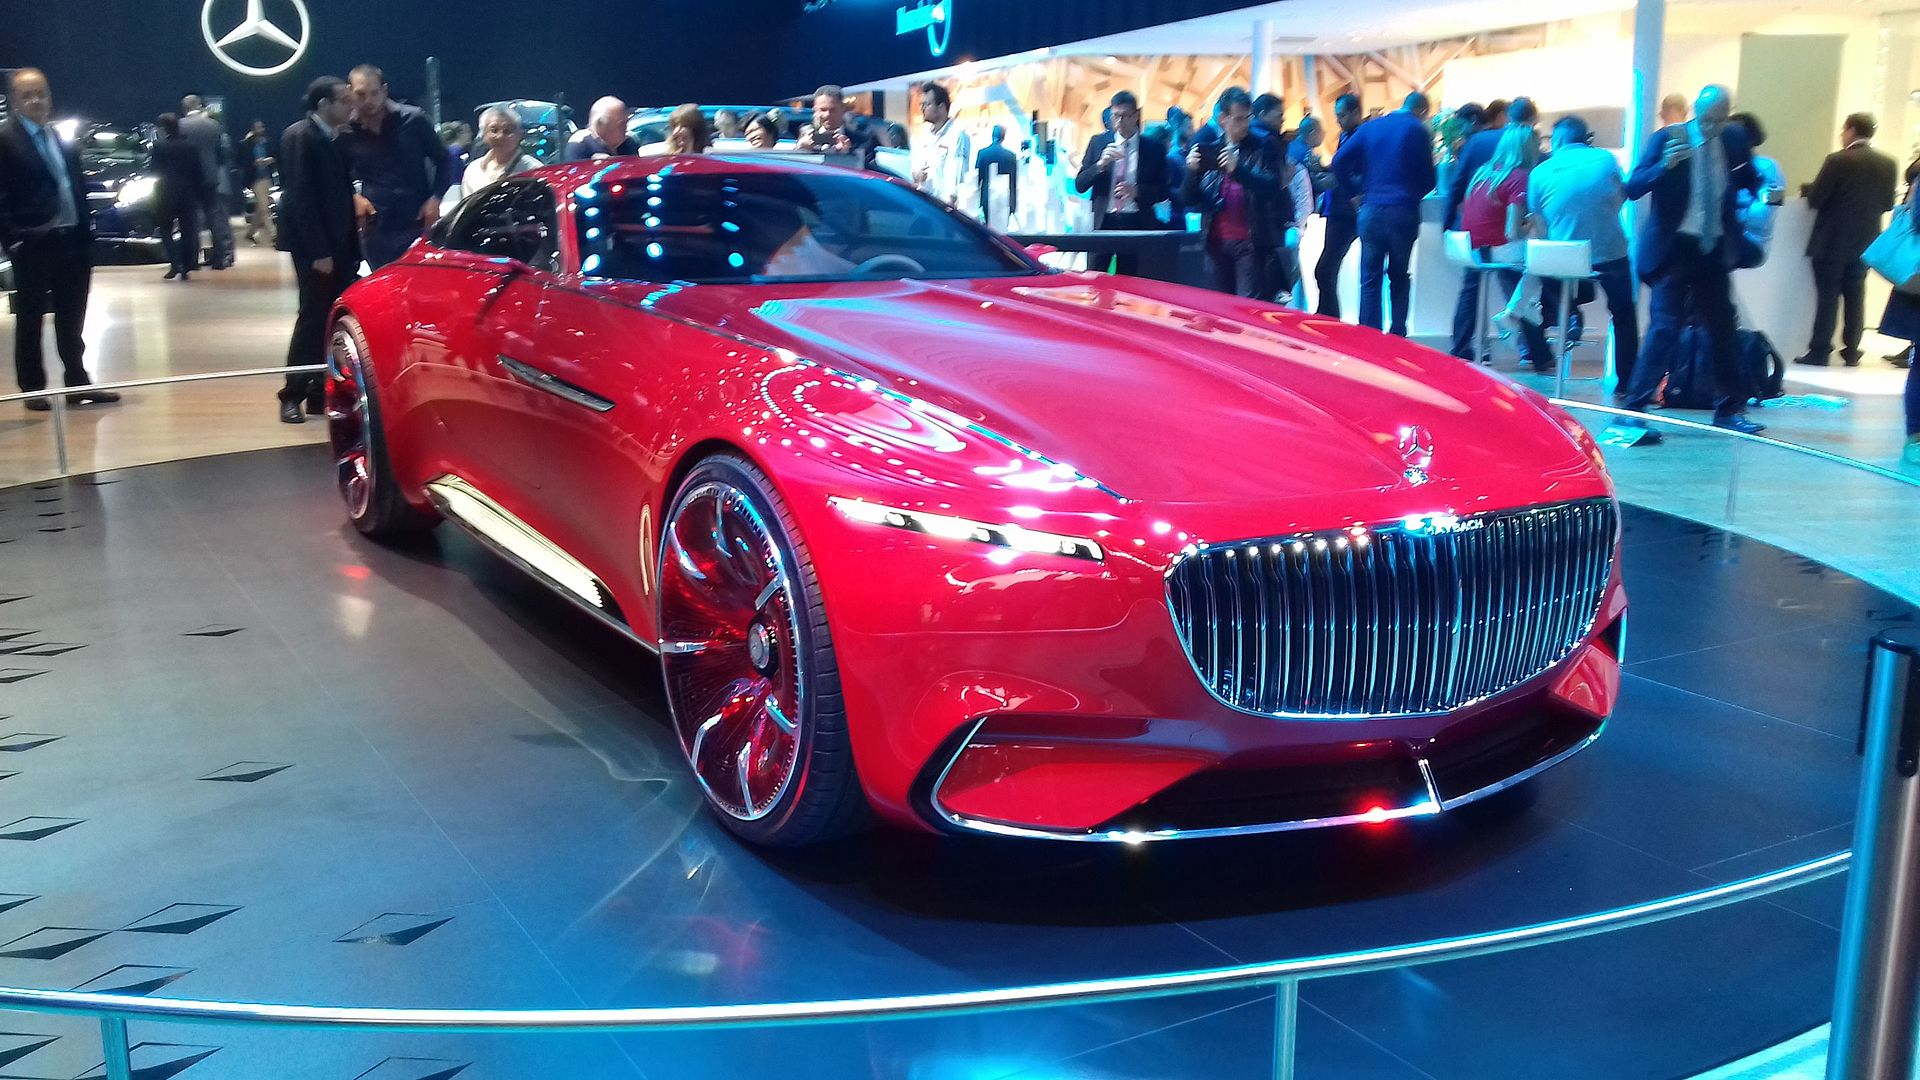 Mercedes maybach 6 wikipedia for Mercedes benz maybach 6 price